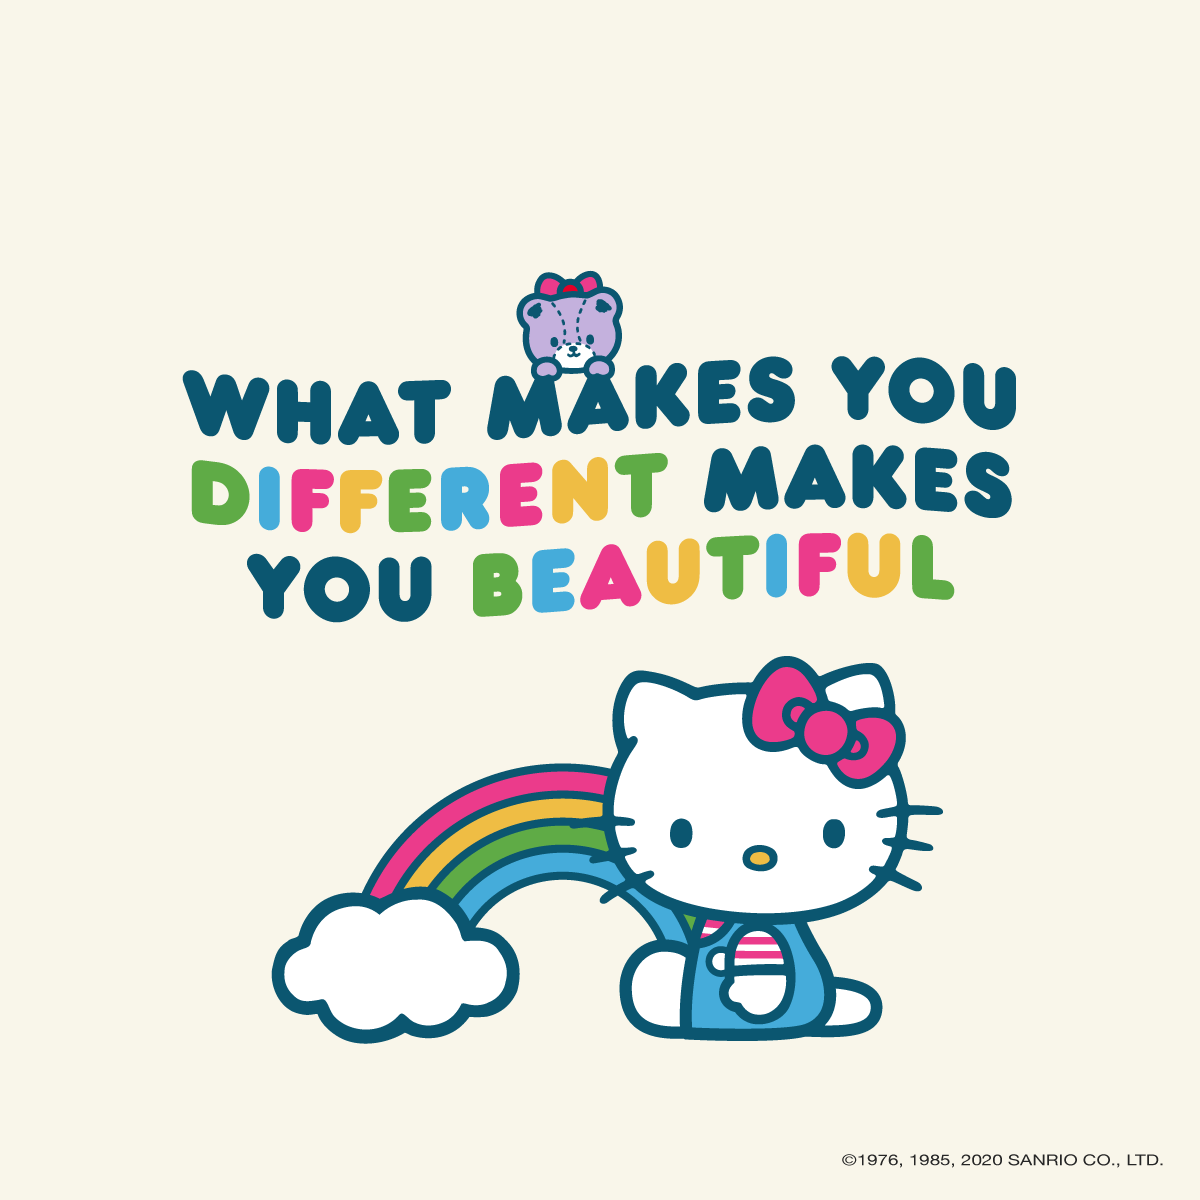 Halloween Imgaes 2020 What Makes You Different Makes You Beautiful in 2020 | Hello kitty